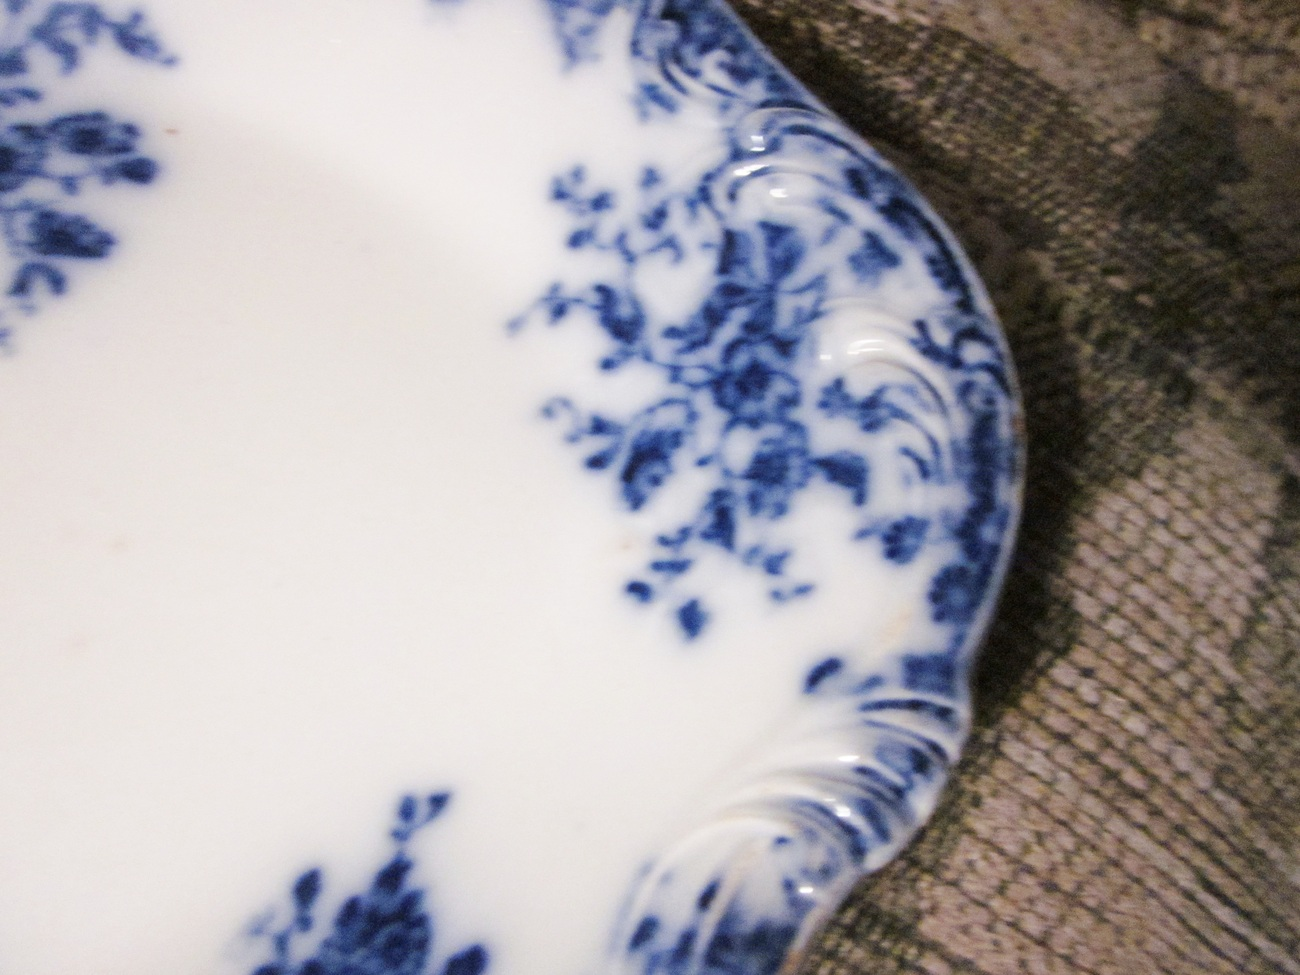 Grindley Flow Blue China Platter England - 8.5 x 12.5 inches (Janette ?)